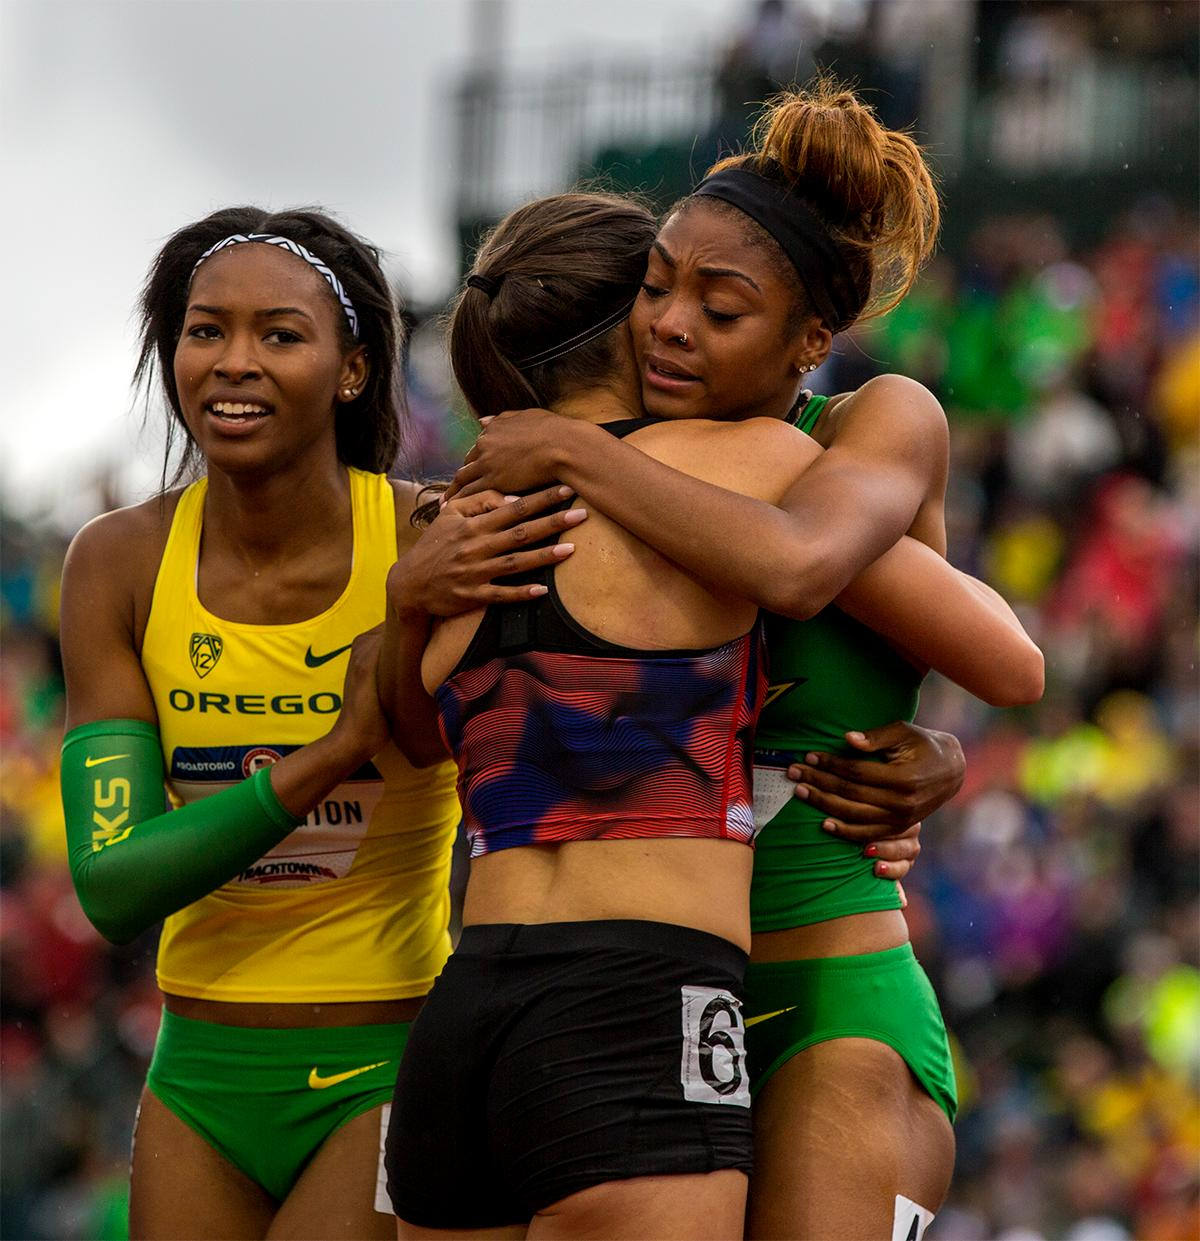 Oregon graduate Jenna Prandini is congratulated by her fellow Oregon students Arianna Washington (left) and Deajah Stevens (right) Prandini finished third in the 200 meters and Steven finished second. Both will be headed to Rio to fight for gold. Photo by August Frank, Oregon News Lab